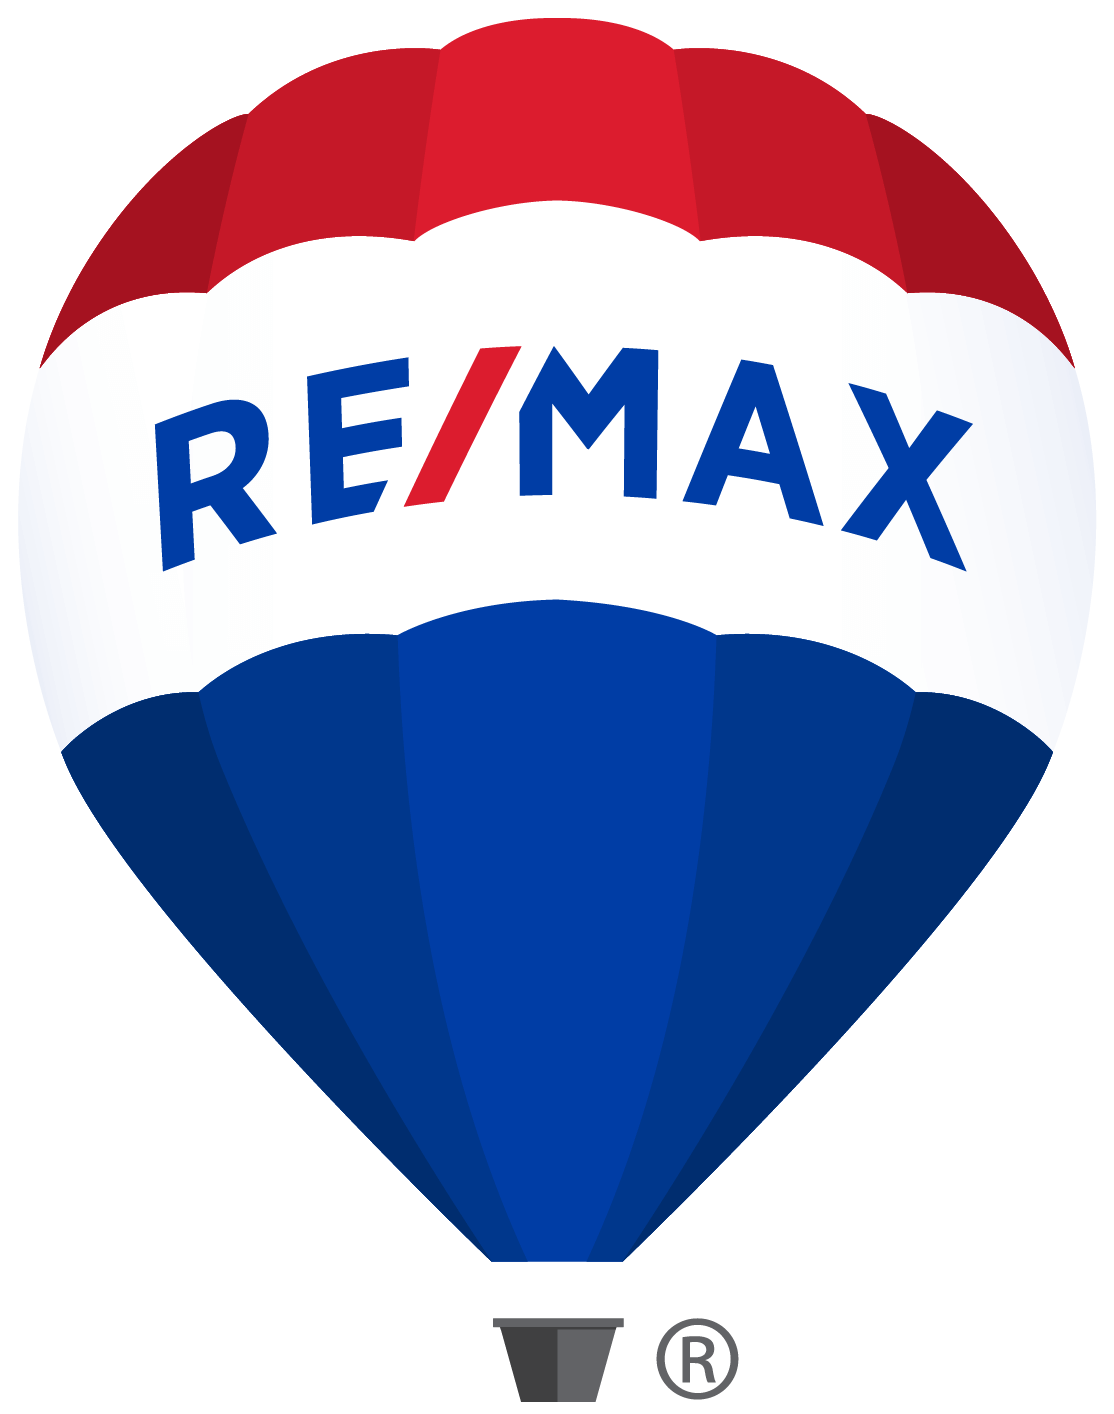 Linhvu Ho of RE/MAX PROFESSIONAL ASSOCIATES